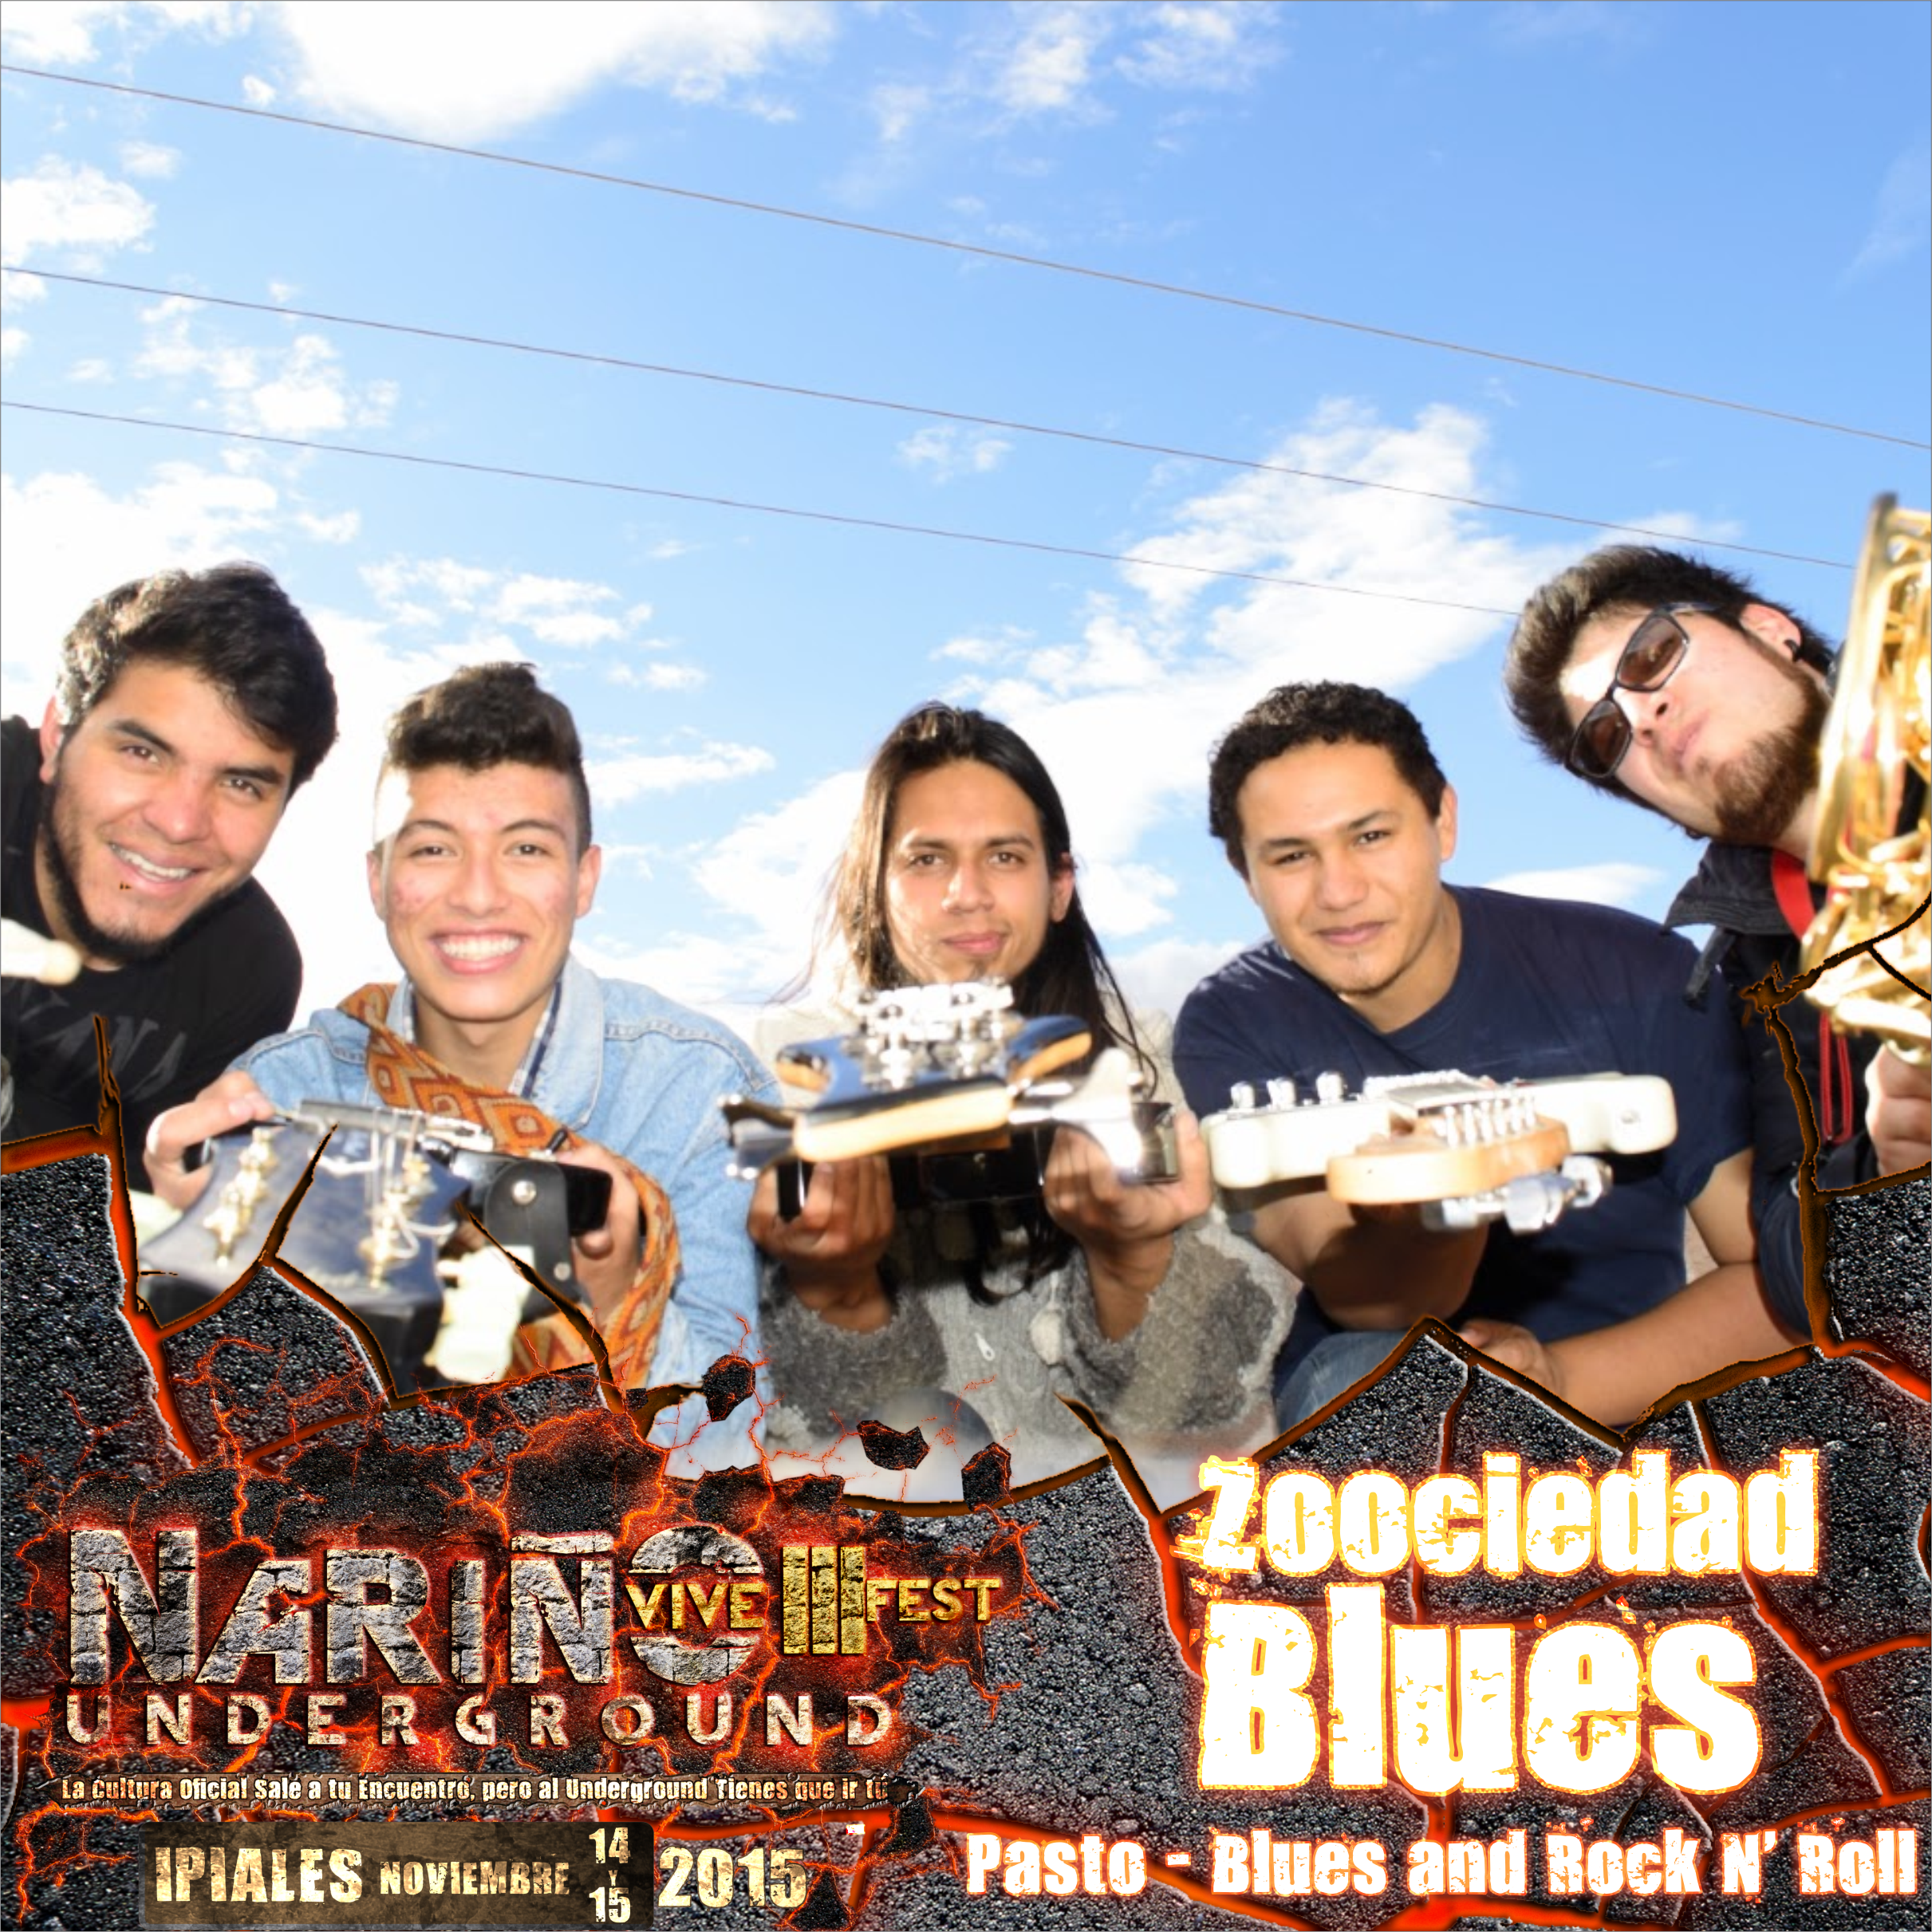 Zoociedad Blues 2